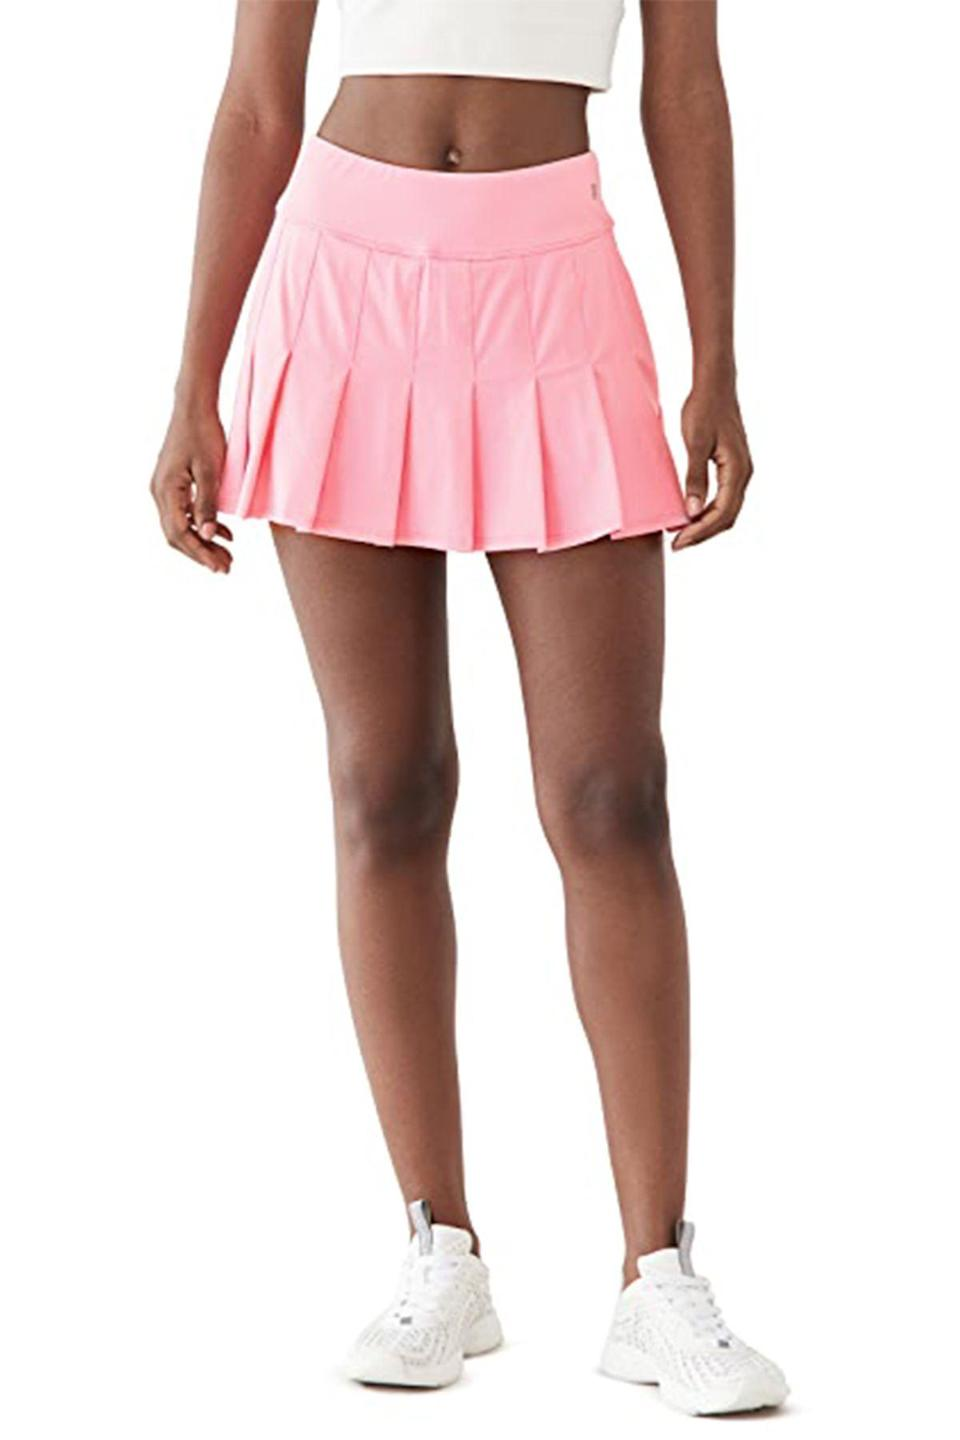 """<p><strong>EleVen by Venus Williams</strong></p><p>shopbop.com</p><p><strong>$79.00</strong></p><p><a href=""""https://go.redirectingat.com?id=74968X1596630&url=https%3A%2F%2Fwww.shopbop.com%2Fflutter-tennis-skirt-eleven-by%2Fvp%2Fv%3D1%2F1570950529.htm&sref=https%3A%2F%2Fwww.townandcountrymag.com%2Fstyle%2Ffashion-trends%2Fg36717600%2Fbest-tennis-skirts%2F"""" rel=""""nofollow noopener"""" target=""""_blank"""" data-ylk=""""slk:Shop Now"""" class=""""link rapid-noclick-resp"""">Shop Now</a></p><p>Tennis champion—and budding fashion mogul—Venus Williams designs every single piece in her EleVen clothing line, so a flawless marriage of form and function is guaranteed.</p>"""